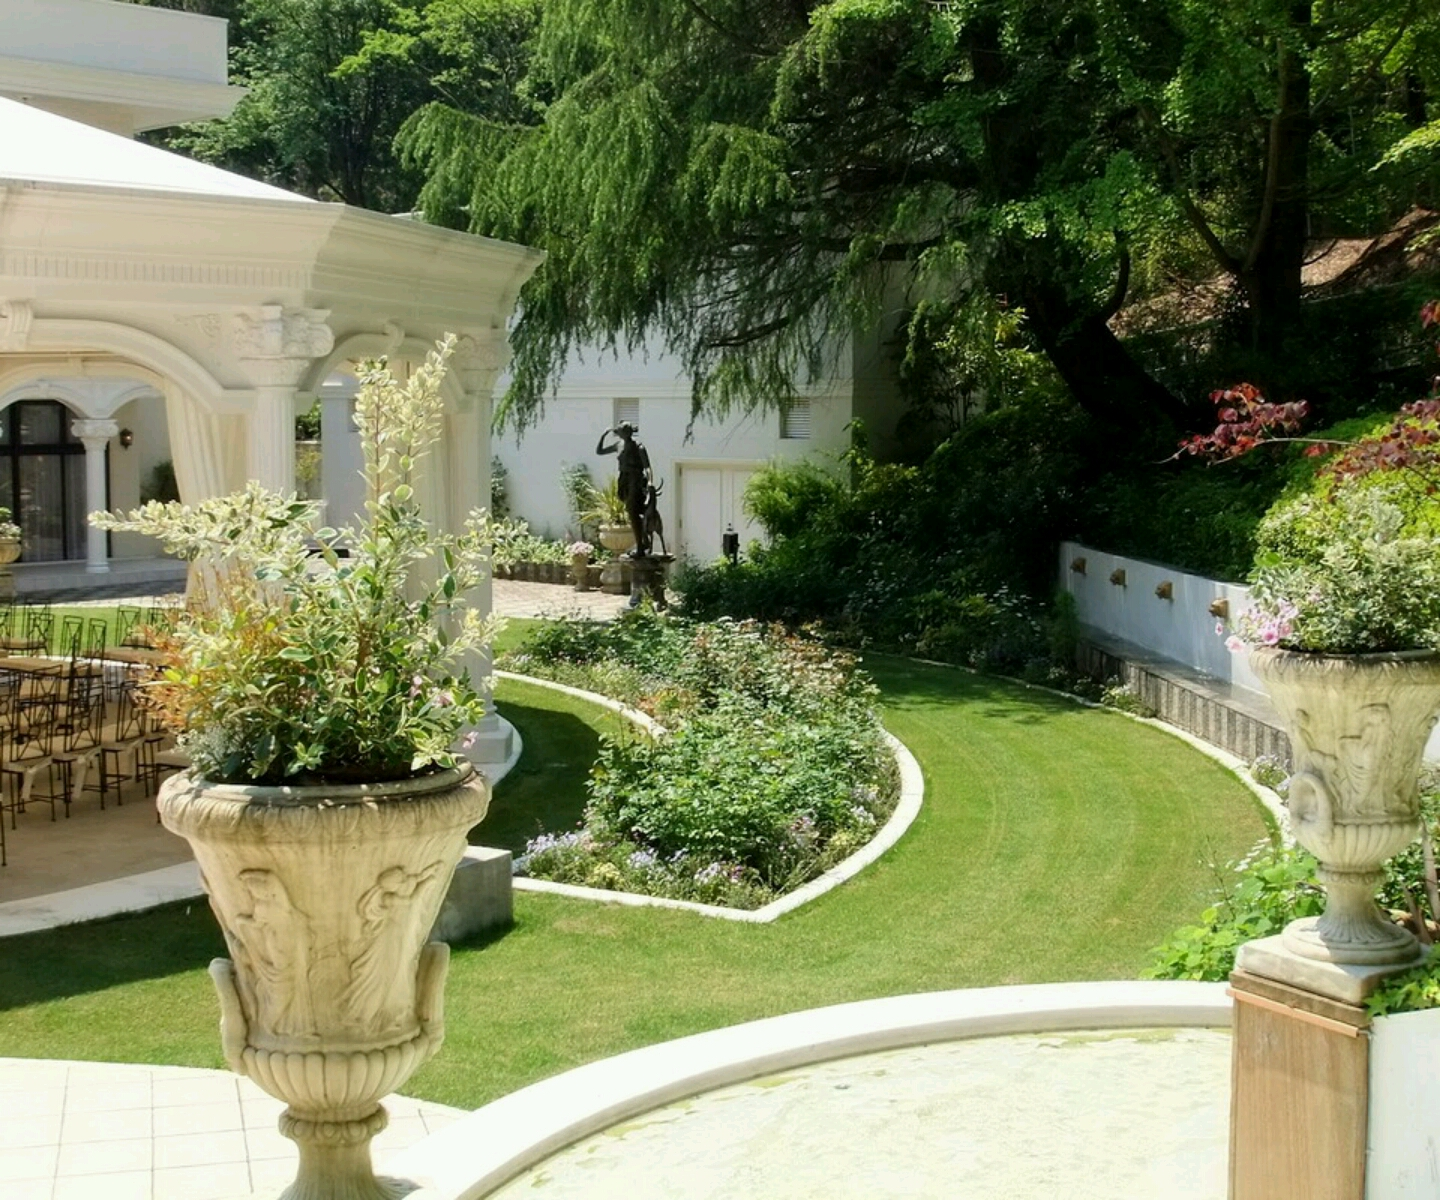 home garden design ideas photo - 1